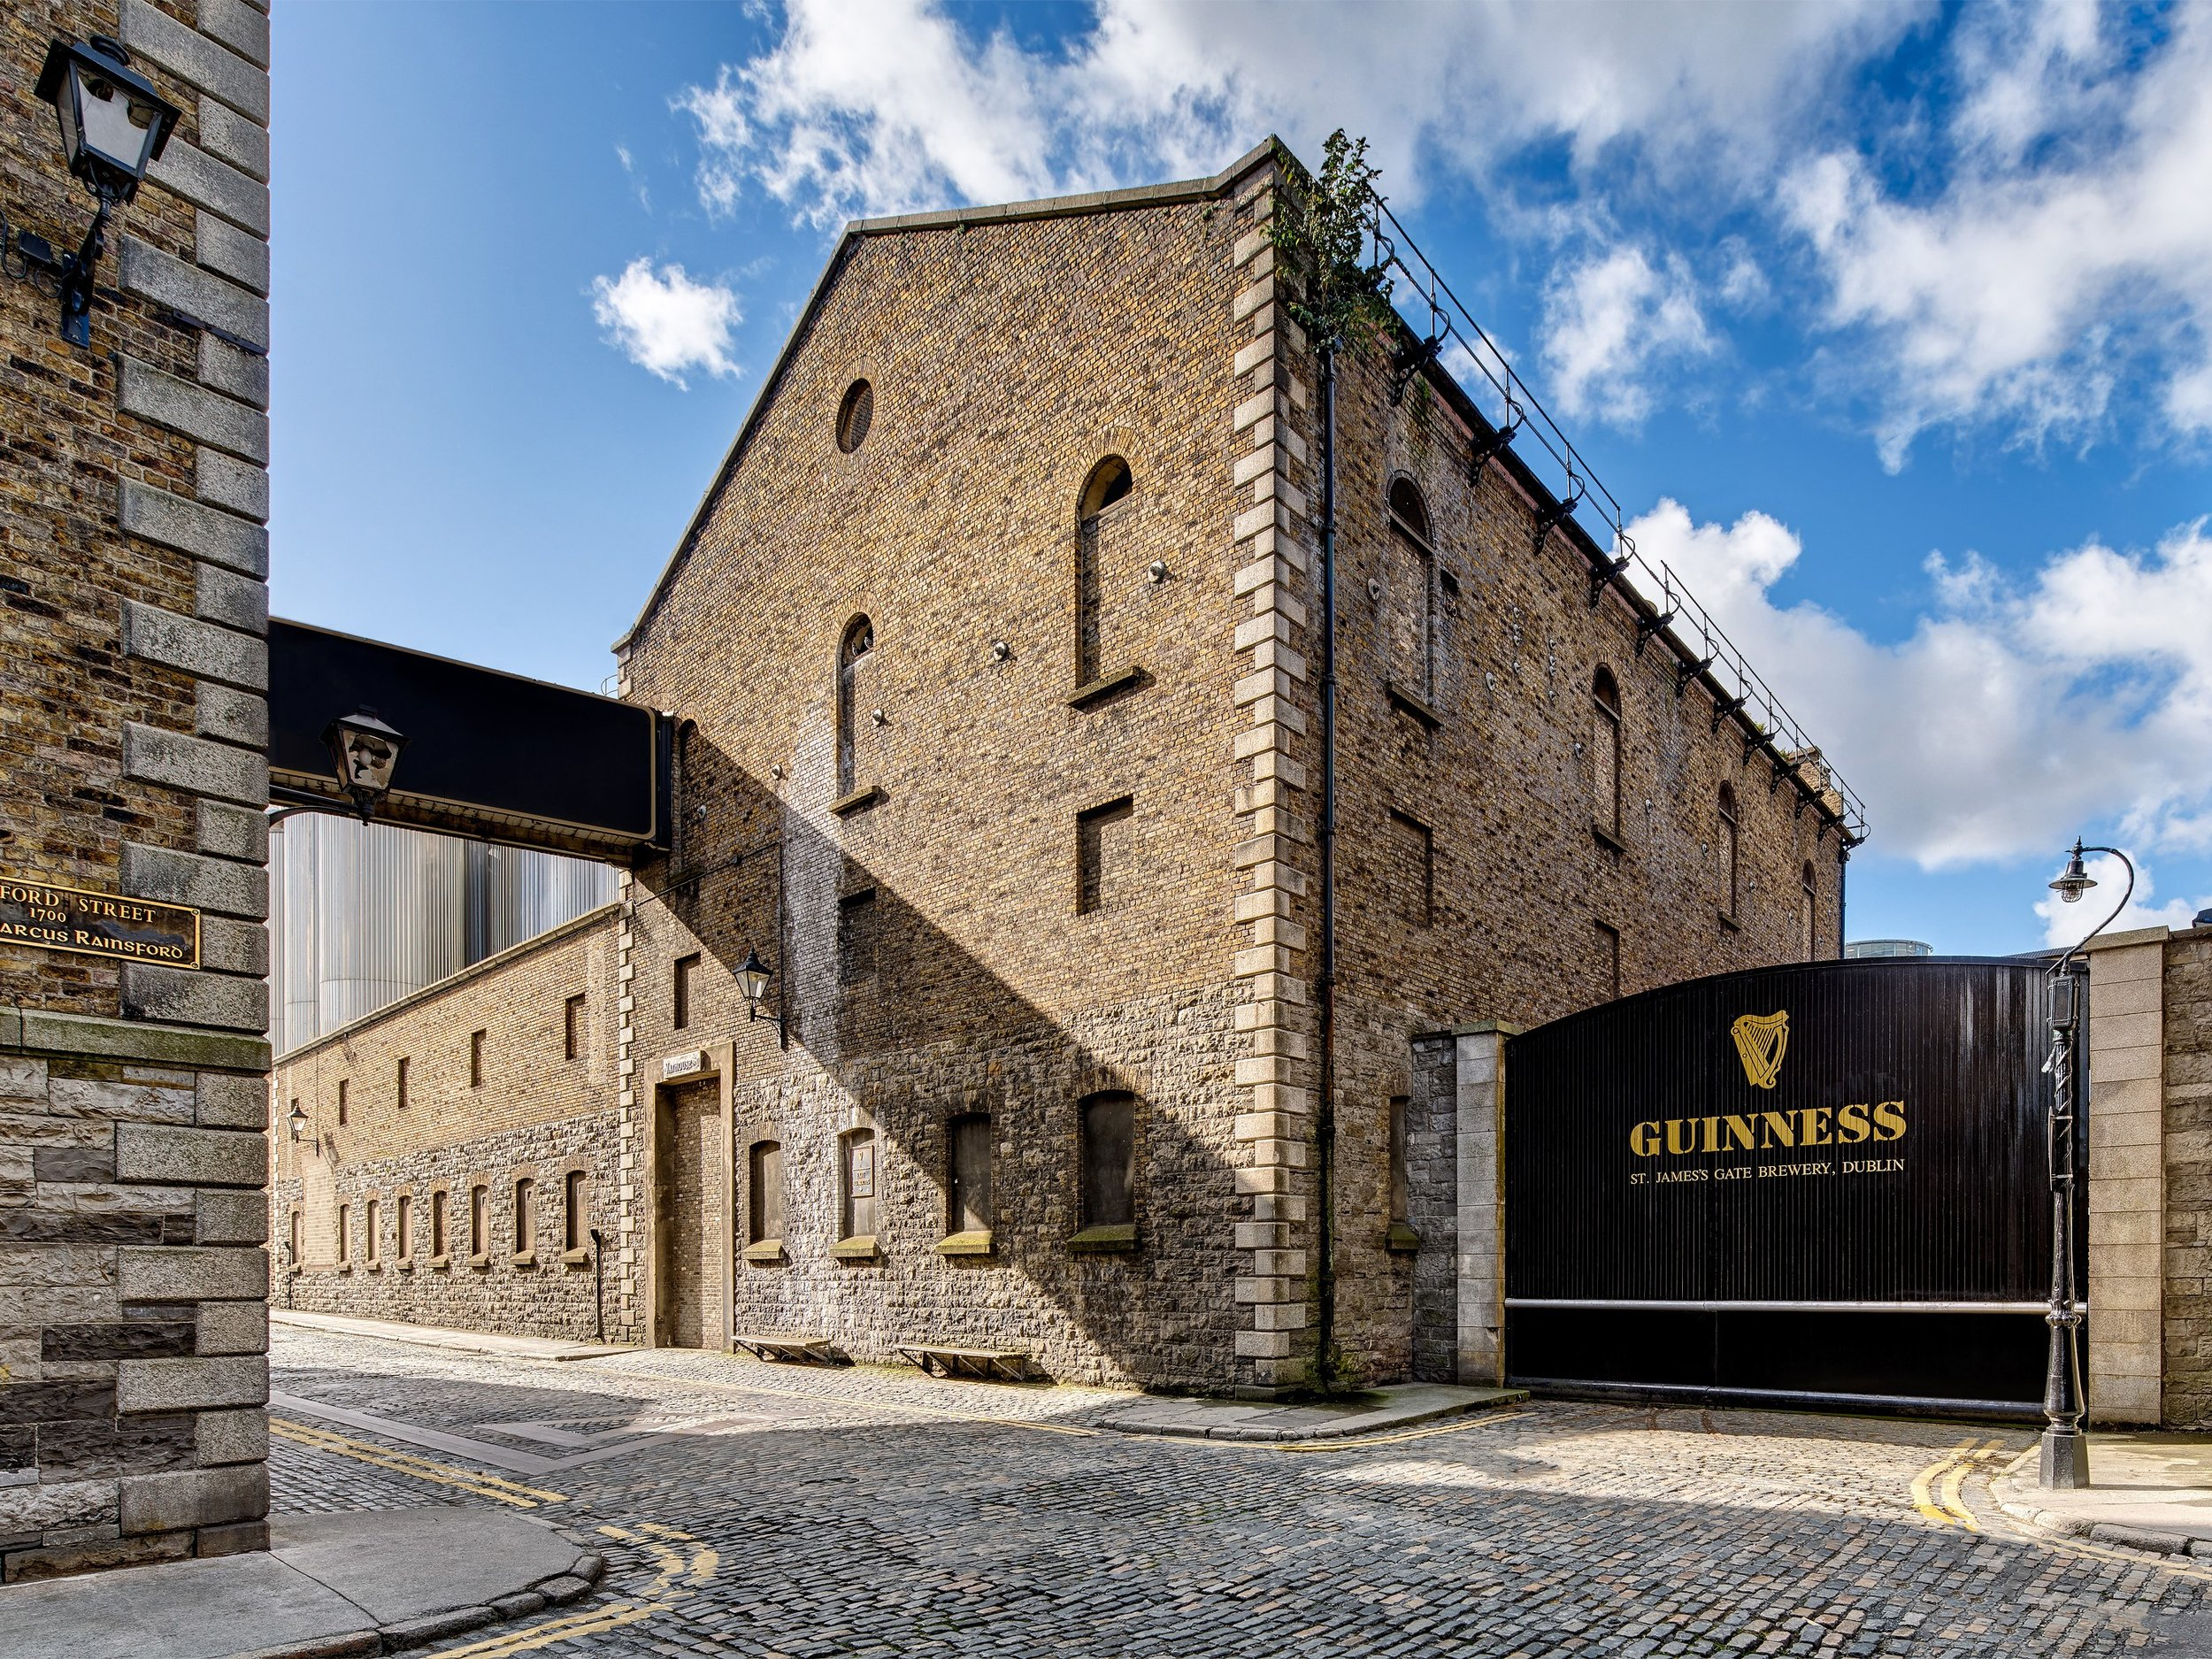 Guinness-Storehouse-02-cr-airbnb.jpg